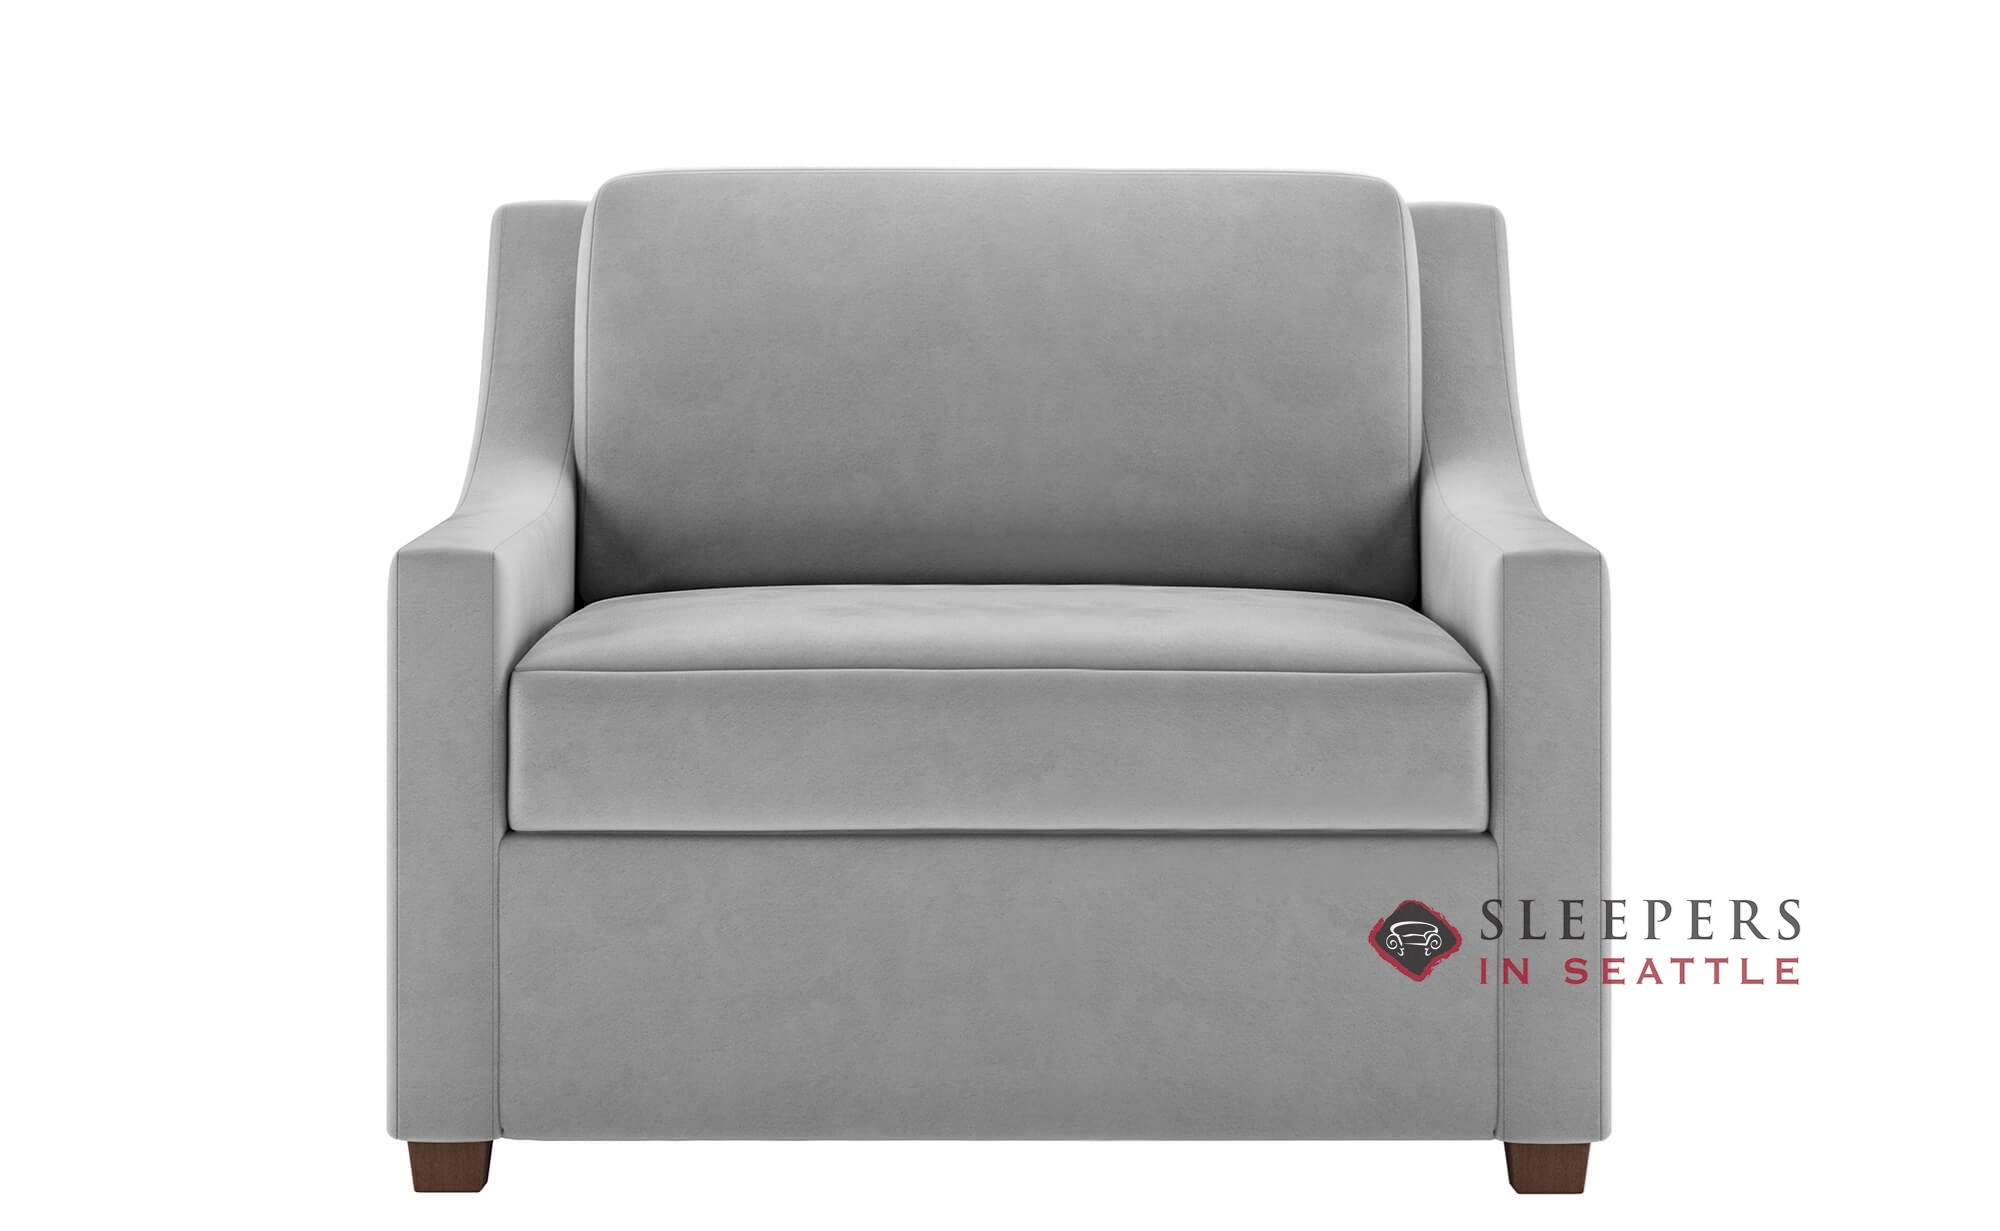 Phenomenal American Leather Perry Low Leg Leather Twin Comfort Sleeper Generation Viii Dailytribune Chair Design For Home Dailytribuneorg